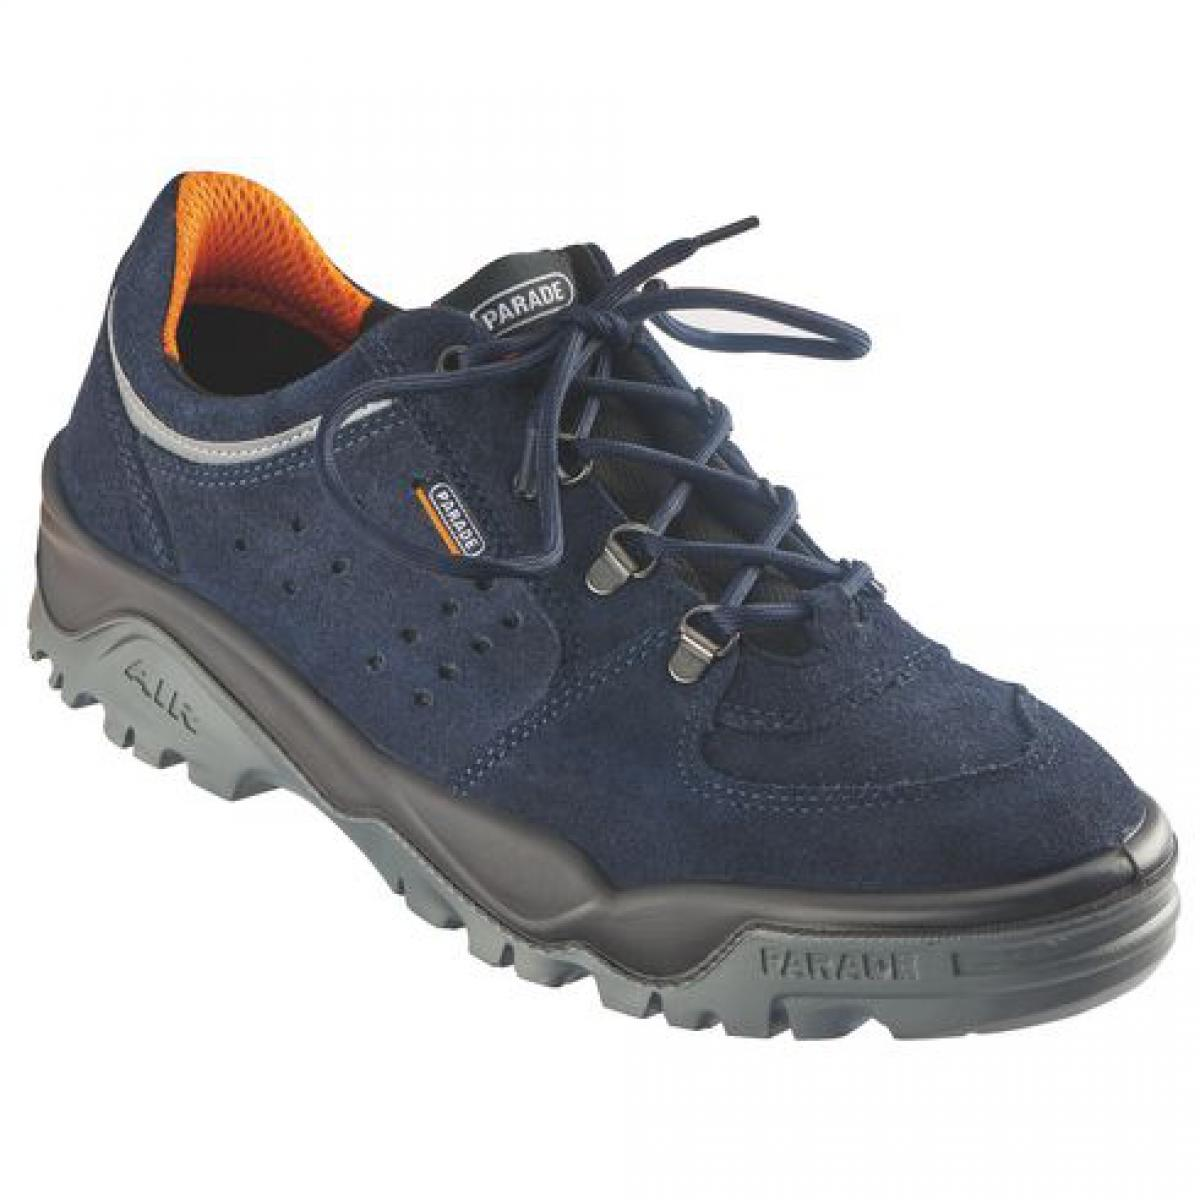 Parade Chaussure Doxo taille 43